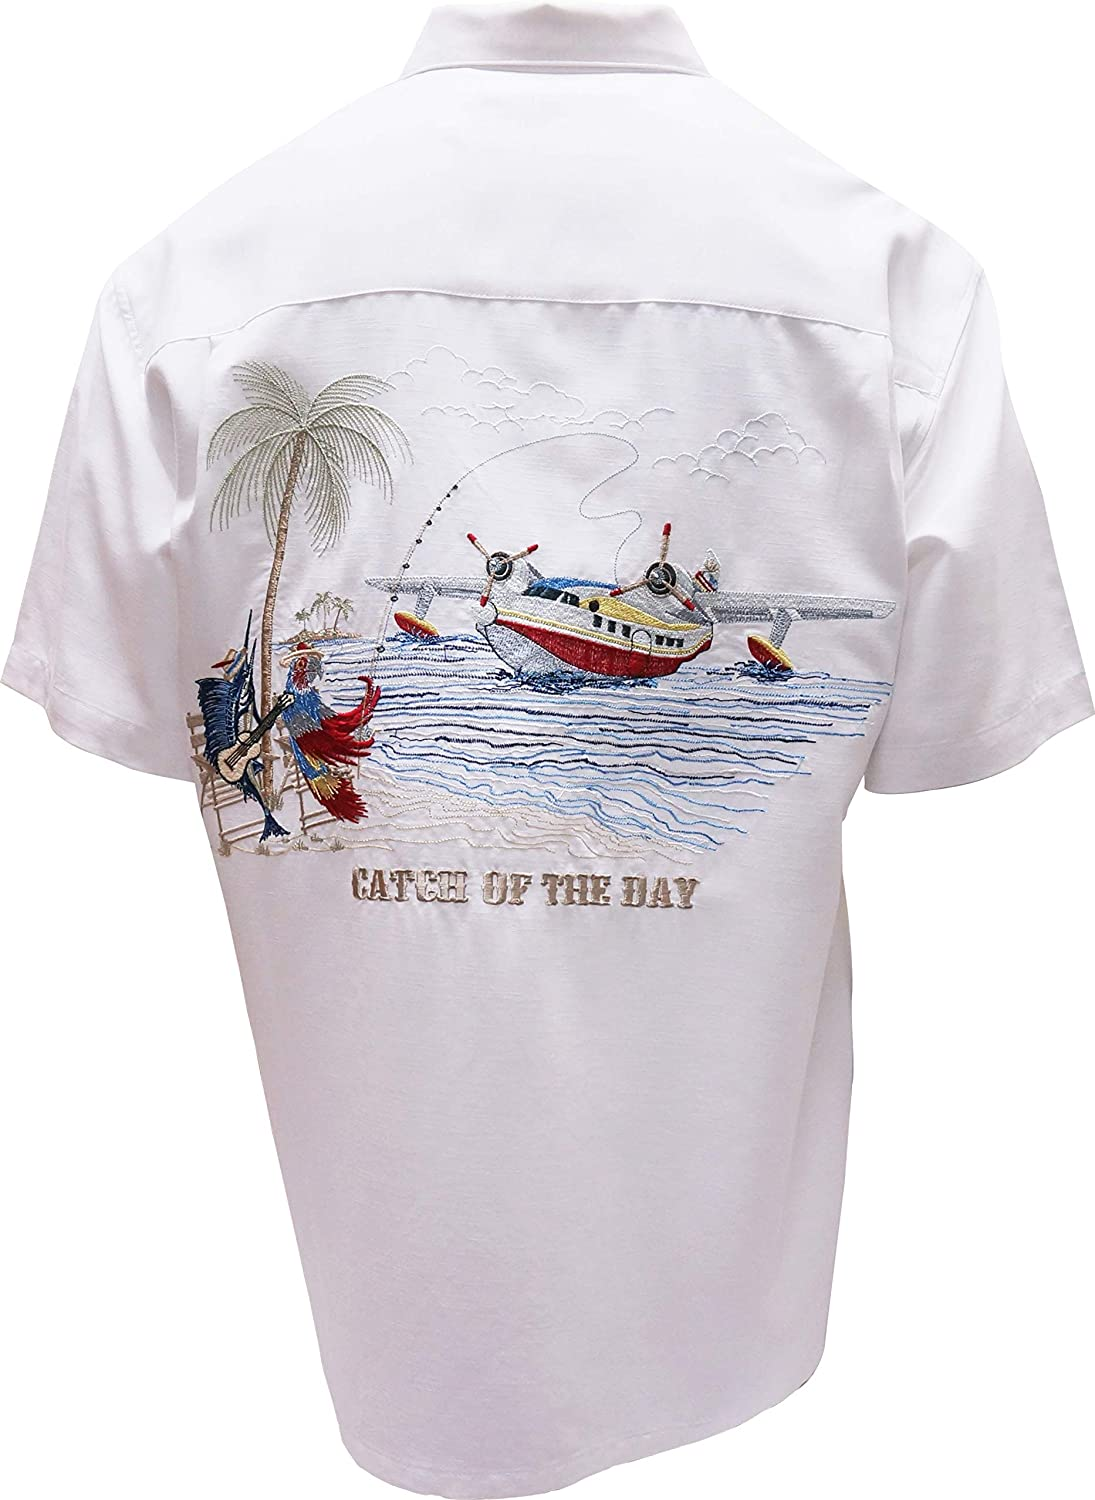 Bamboo Cay Mens Short Sleeve Catch of The Day Casual Embroidered Woven Shirt